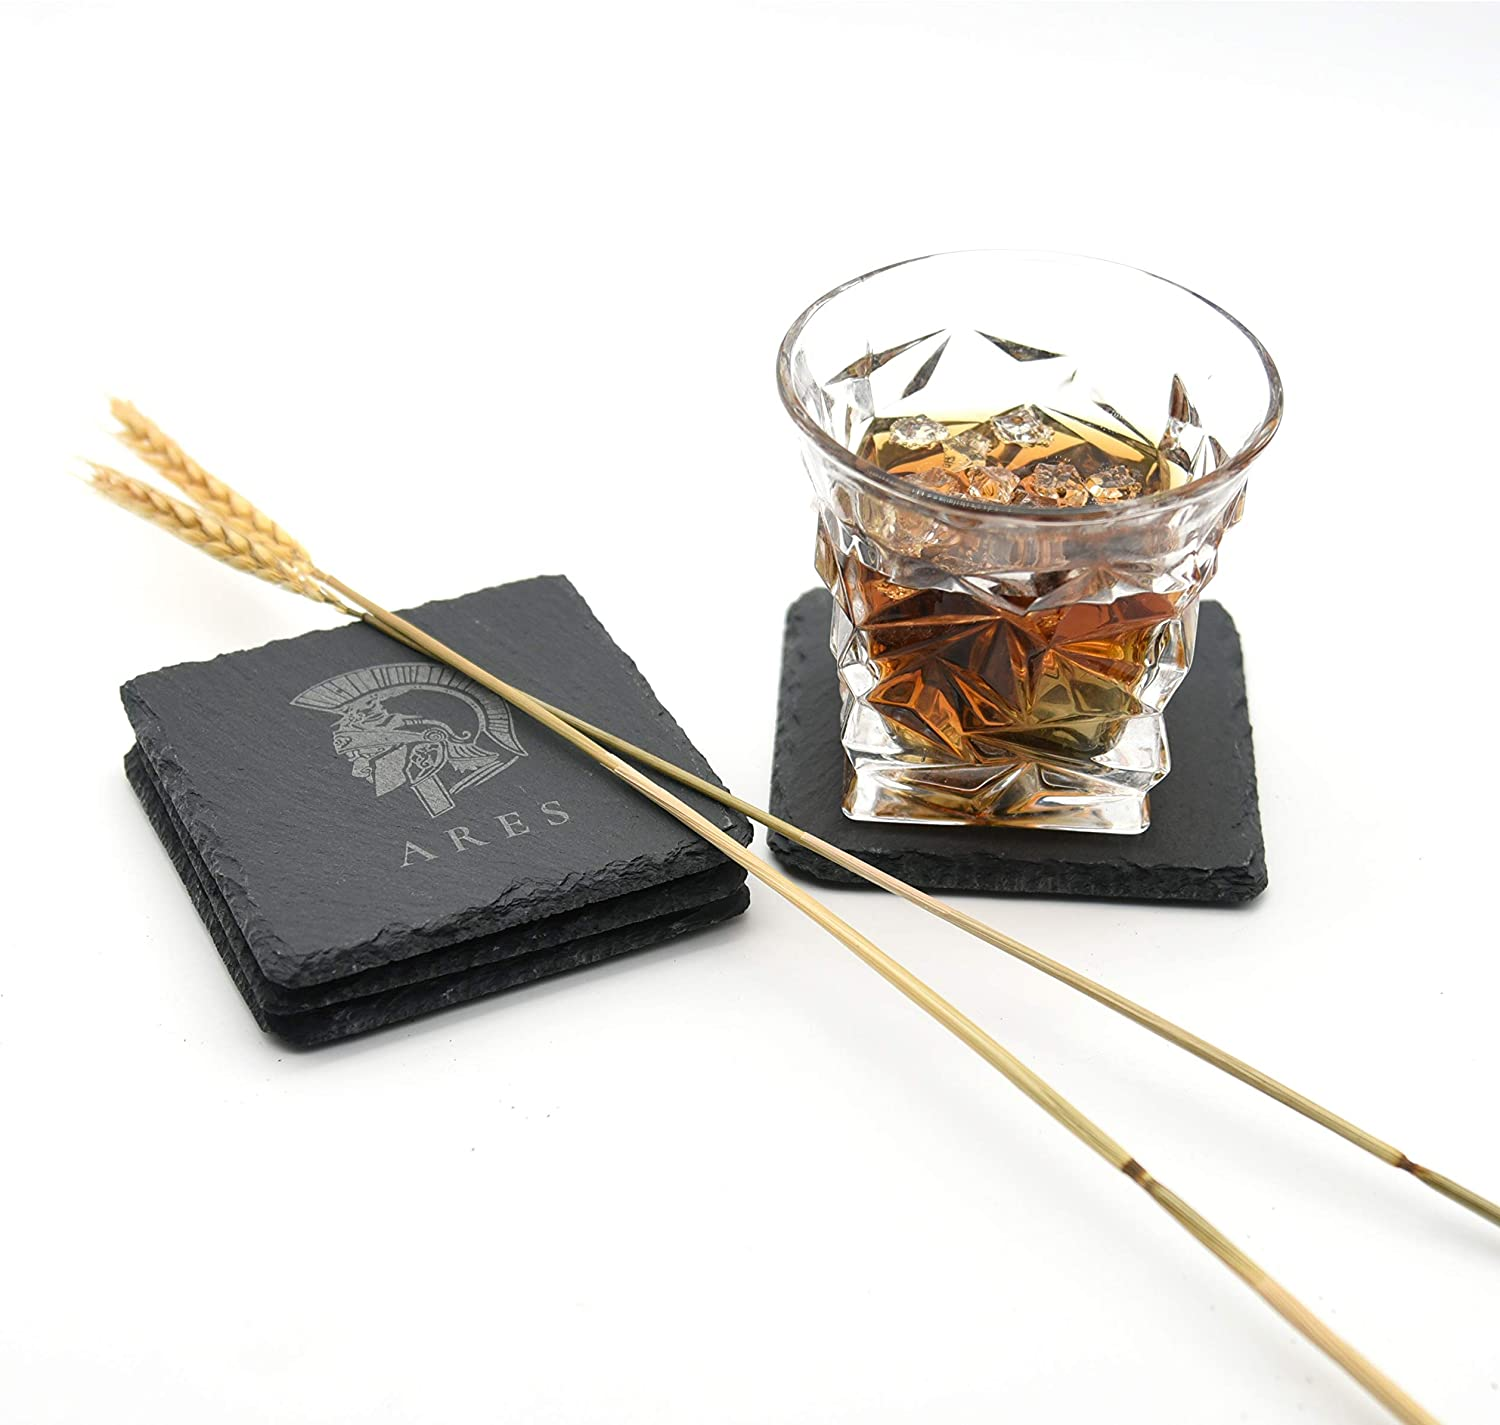 Aphroo Personalized Black Drink Slate Coasters-The Ancient Greek Mythology Series, Suitable for Bar,Home,Office,Kitchen,Holiday Party,3.94